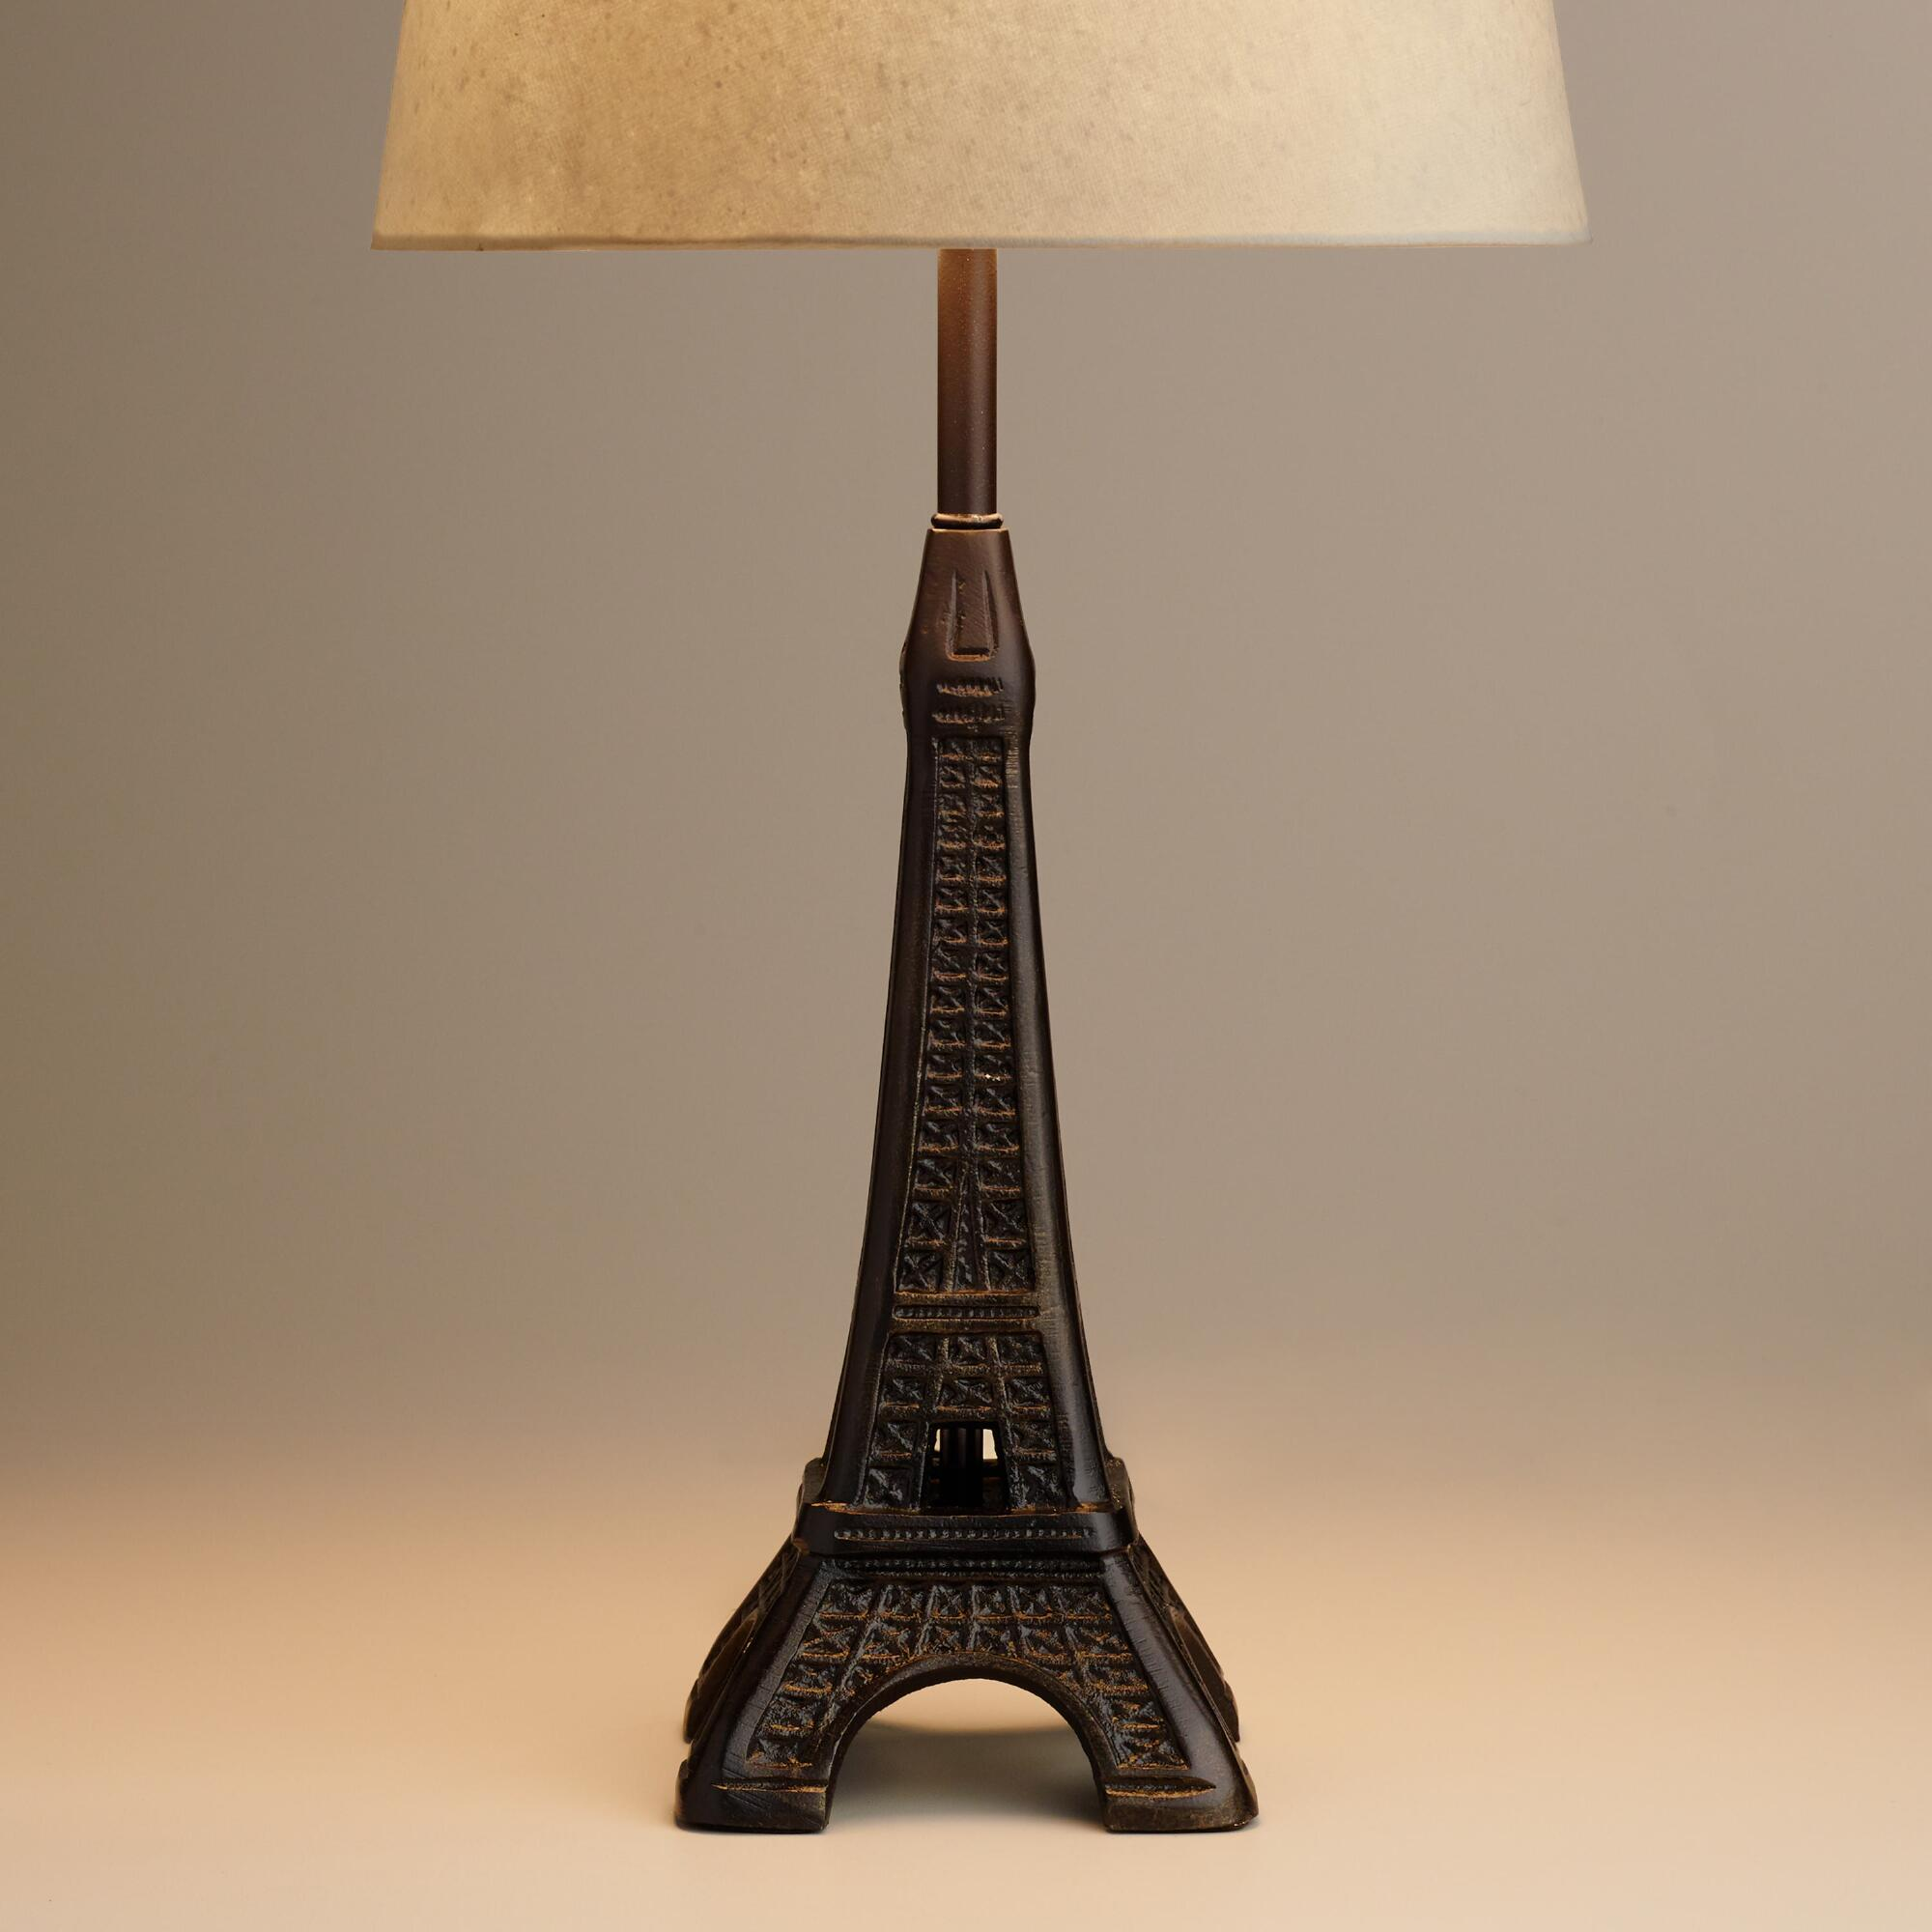 Superb Design Of The Black Iron Eiffel Tower Ideas With Beige Lamp On The White Table Ideas